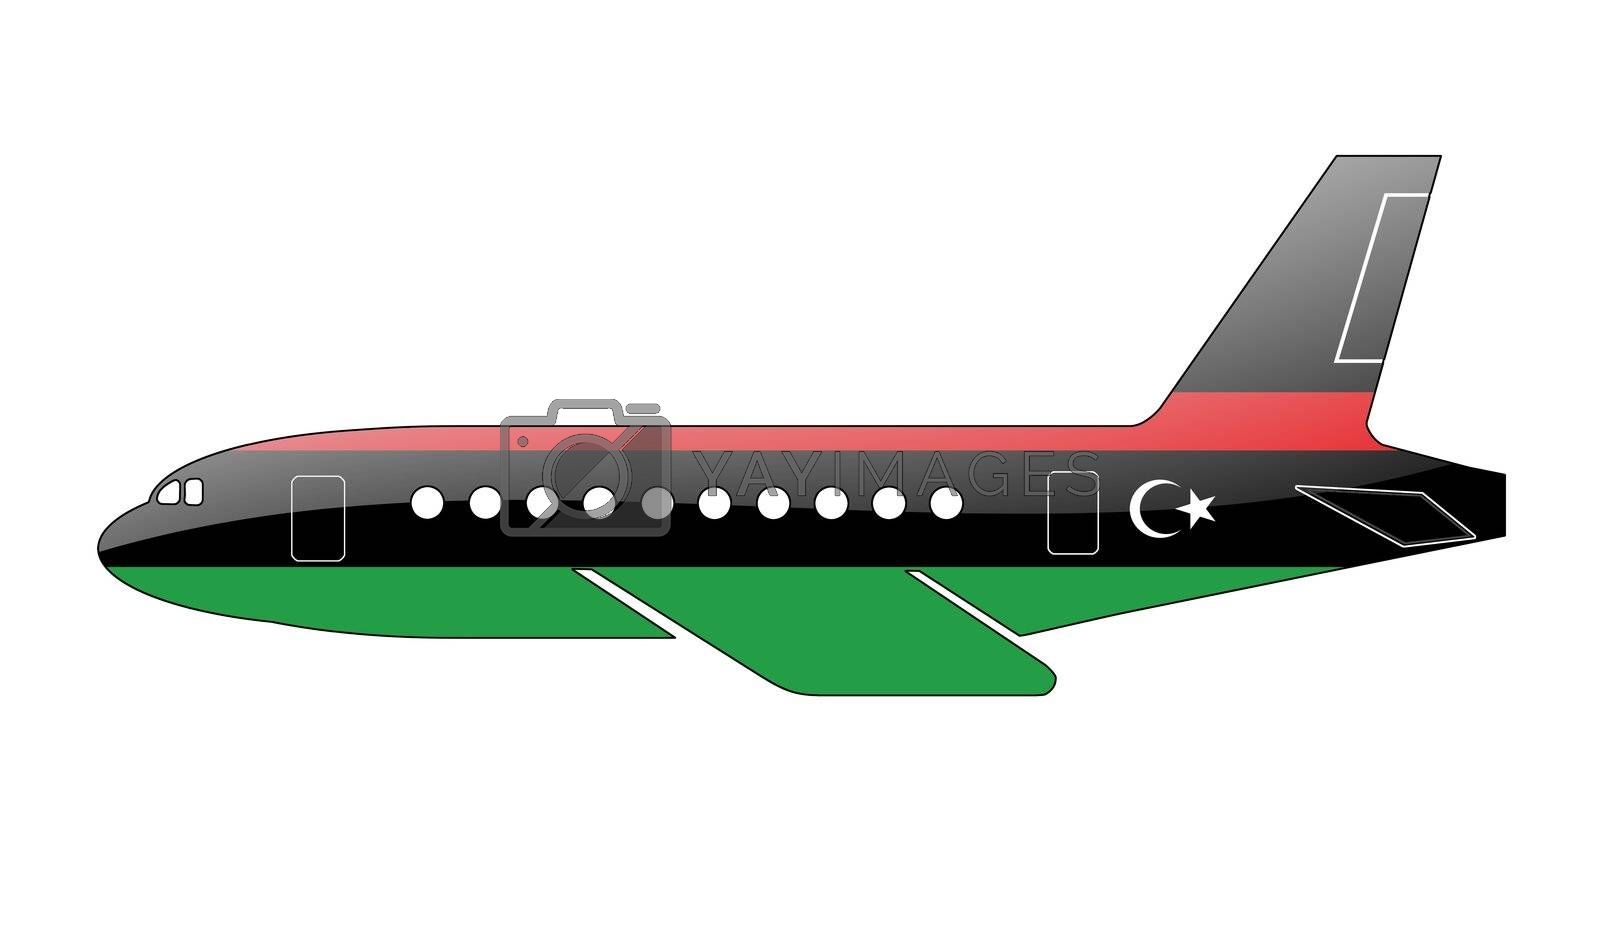 The Libyan flag painted on the silhouette of a aircraft. glossy illustration